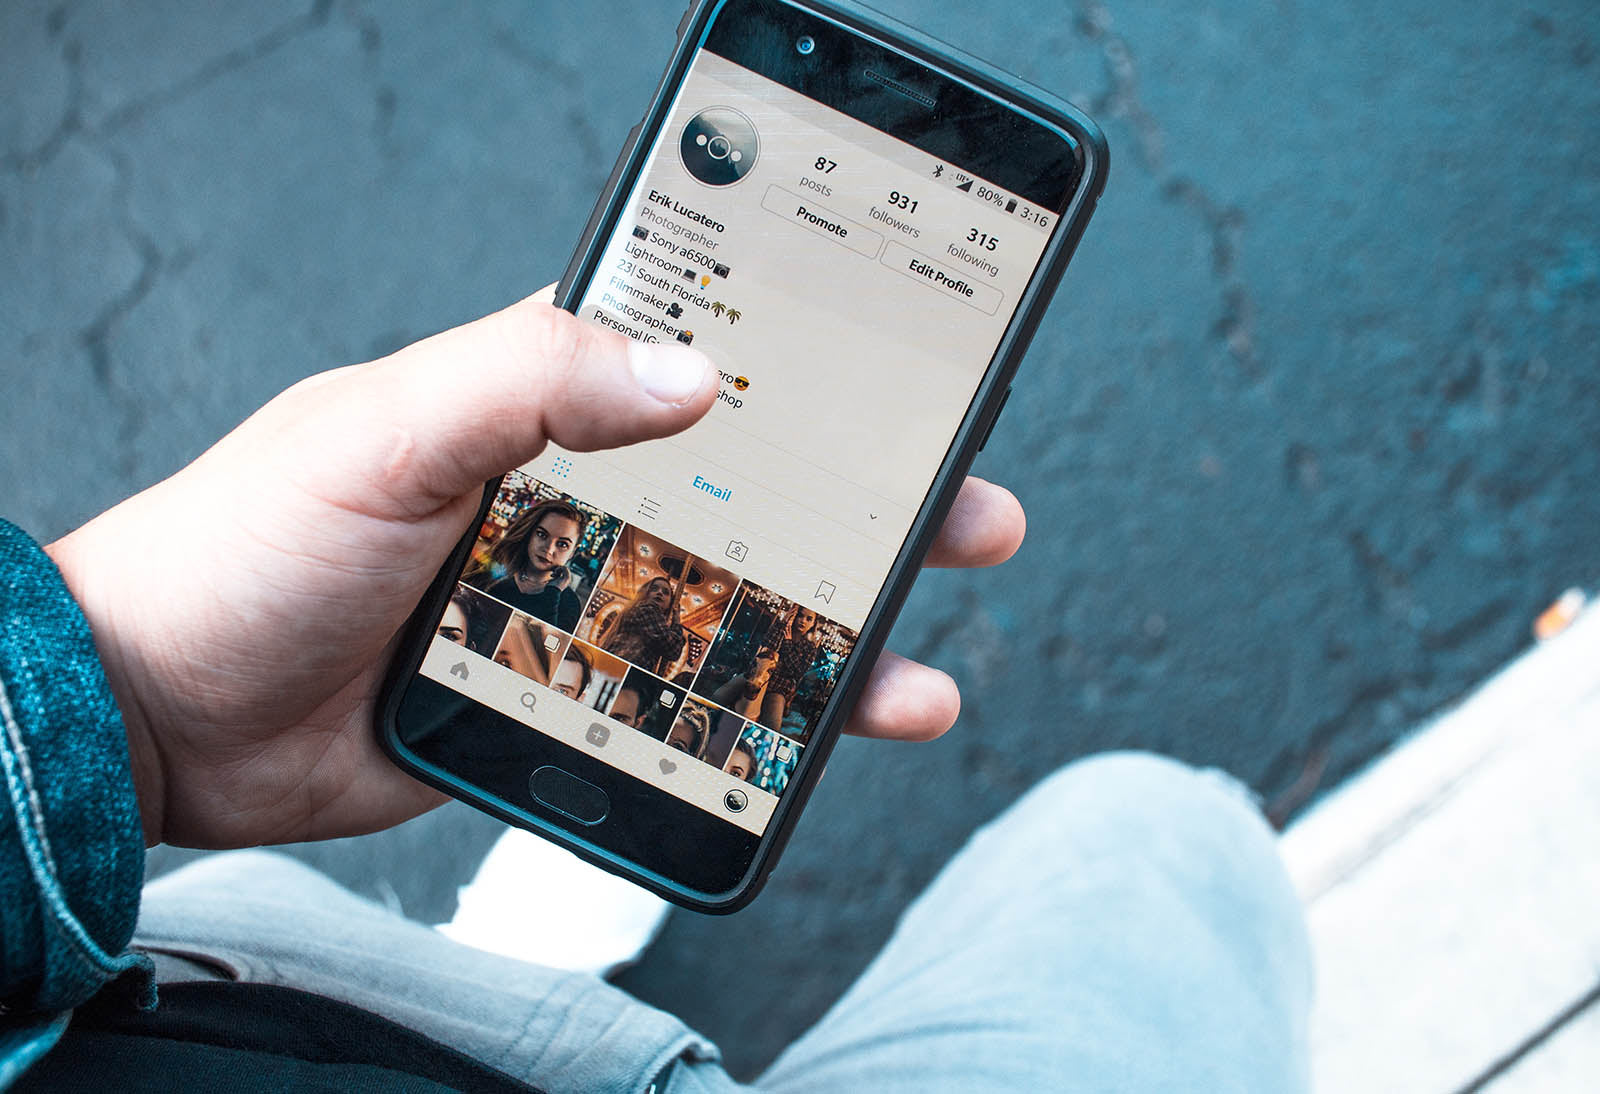 Should You Buy Real Instagram Followers? Breaking Down the Options